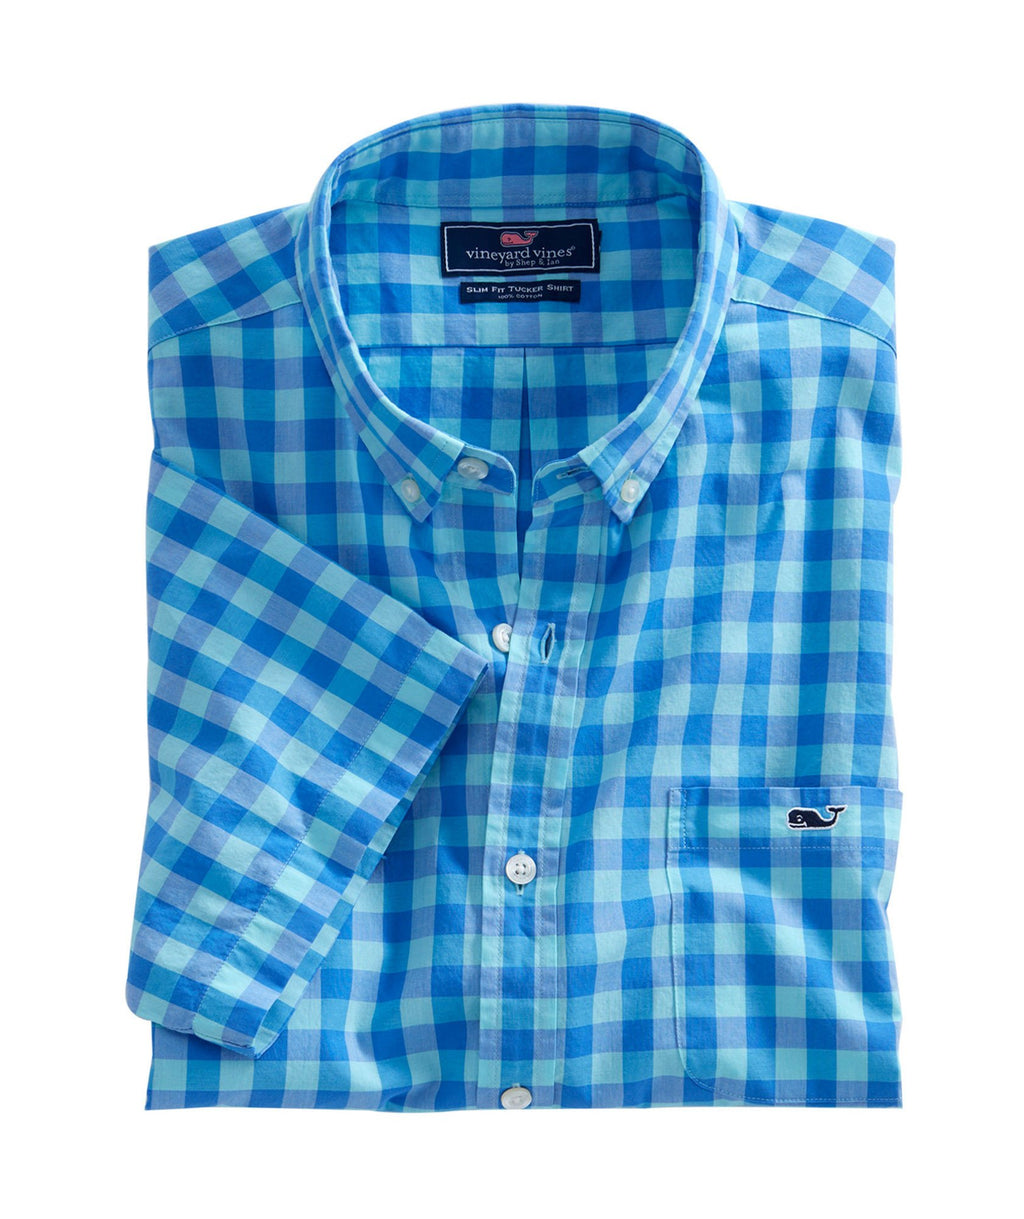 Vineyard Vines Short-Sleeve Slim Fit Tucker Shirt - Fort George Check